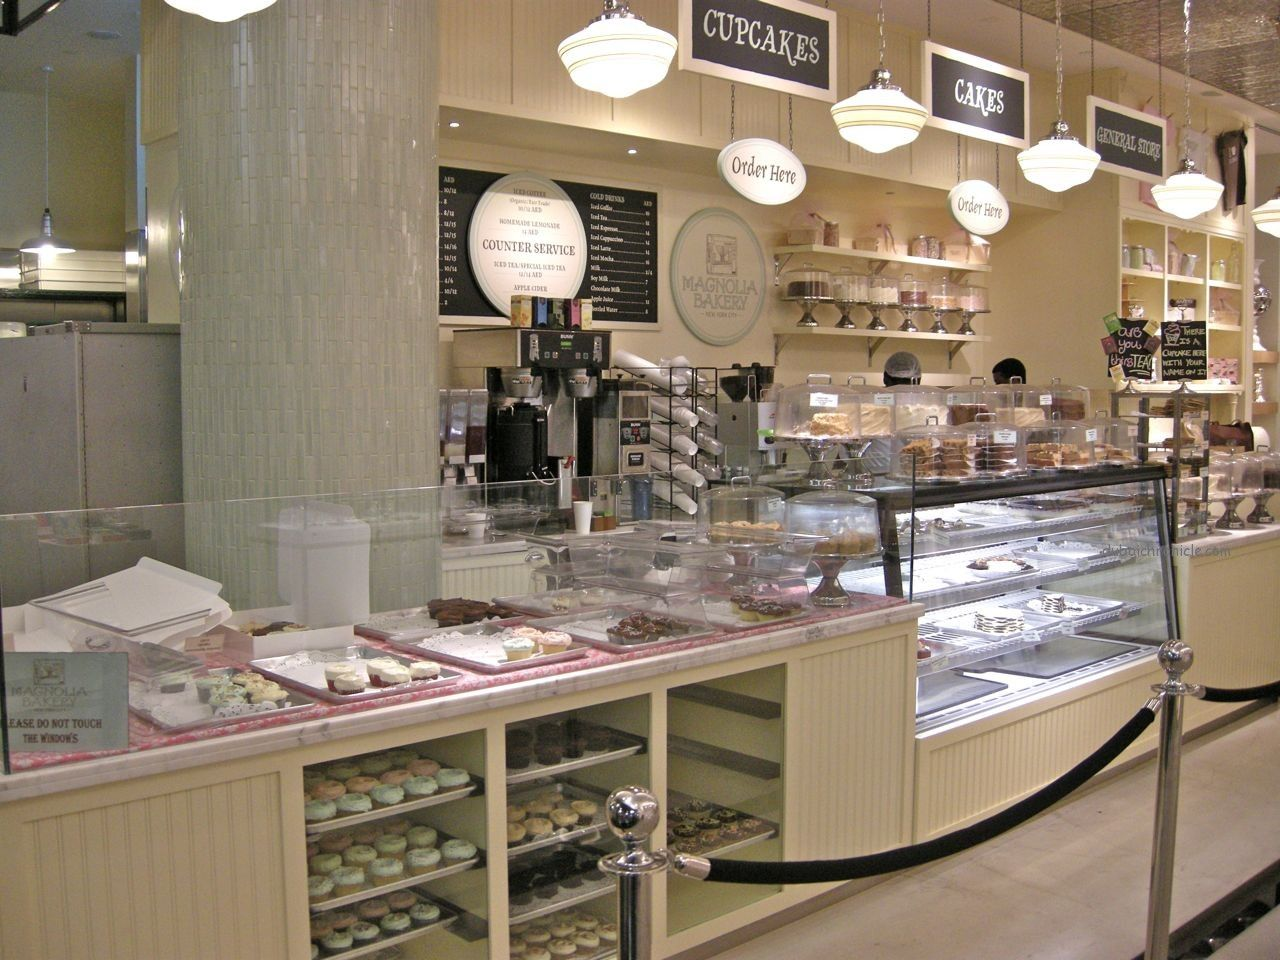 Magnolia Bakery Dubai opened last year in the upscale Dubai Mall